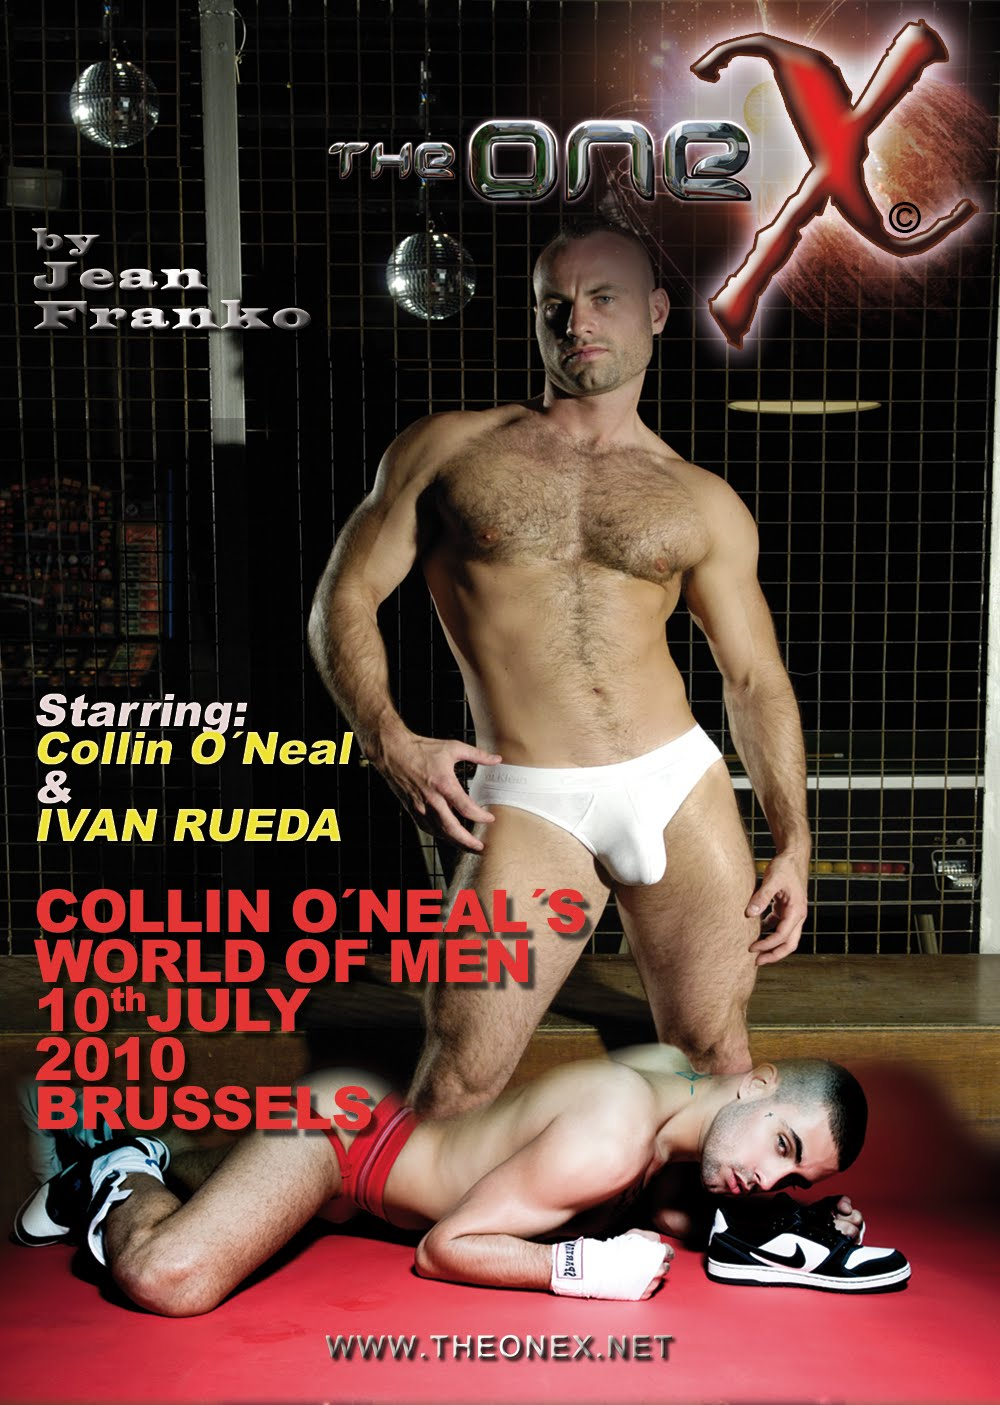 Collin Oneals World Of Men Spain 4